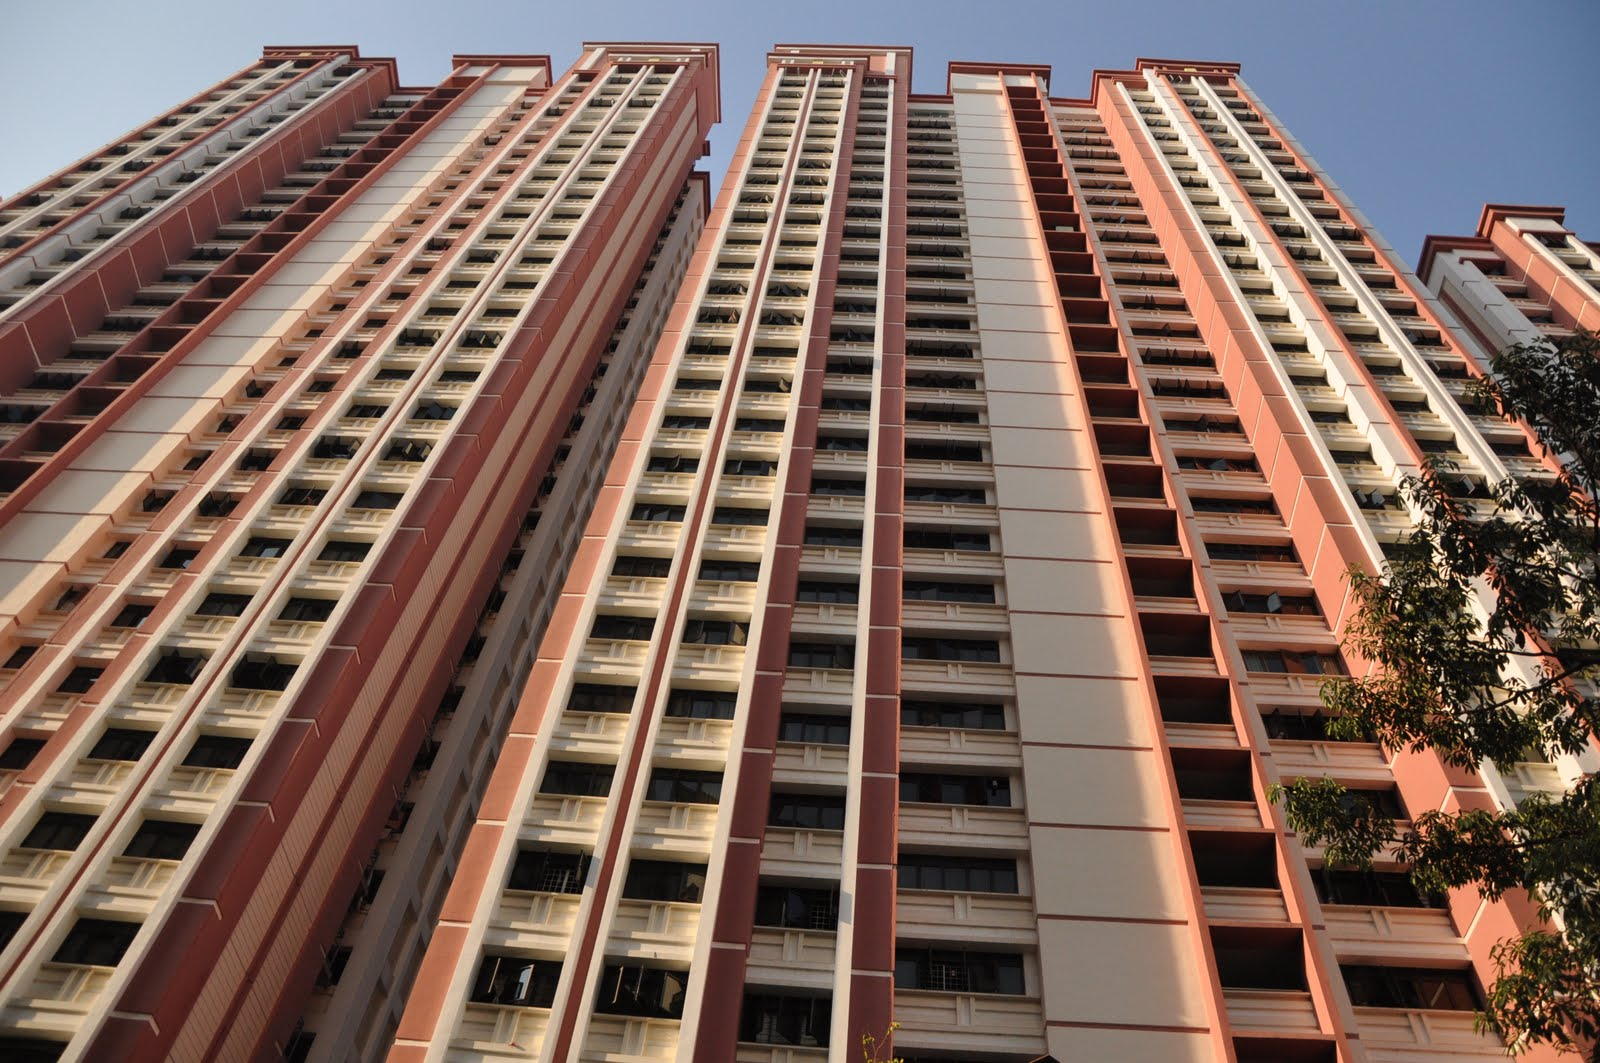 ... investing in Singapore stocks: Are HDB flats really too expensive